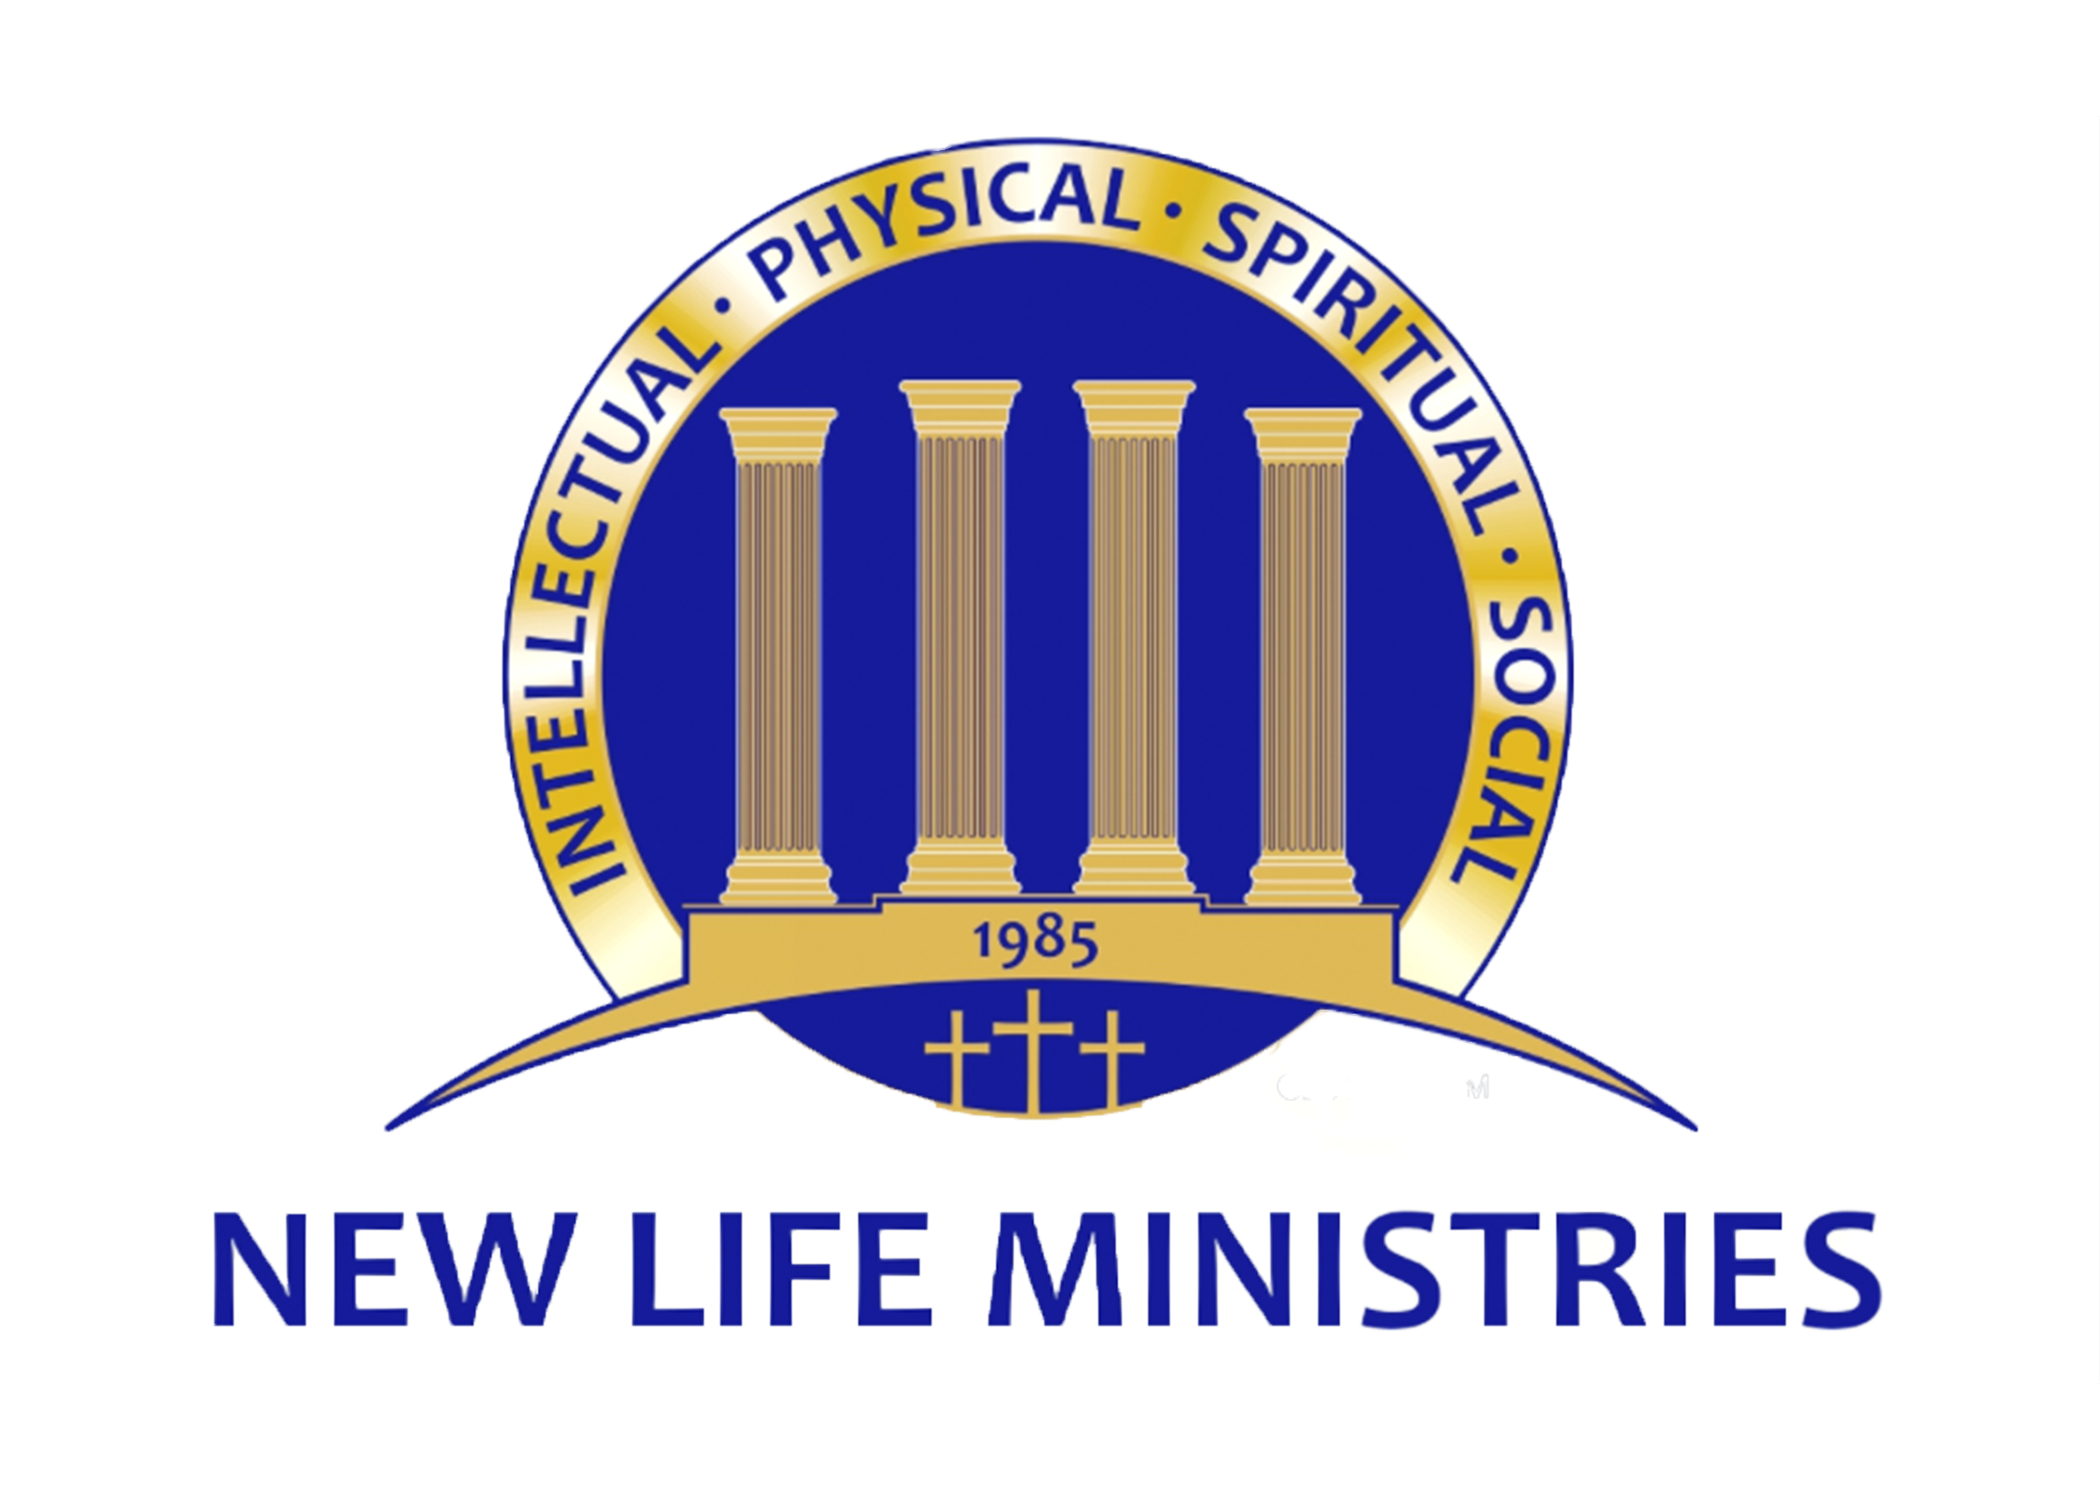 New Life Baptist Church Ministries